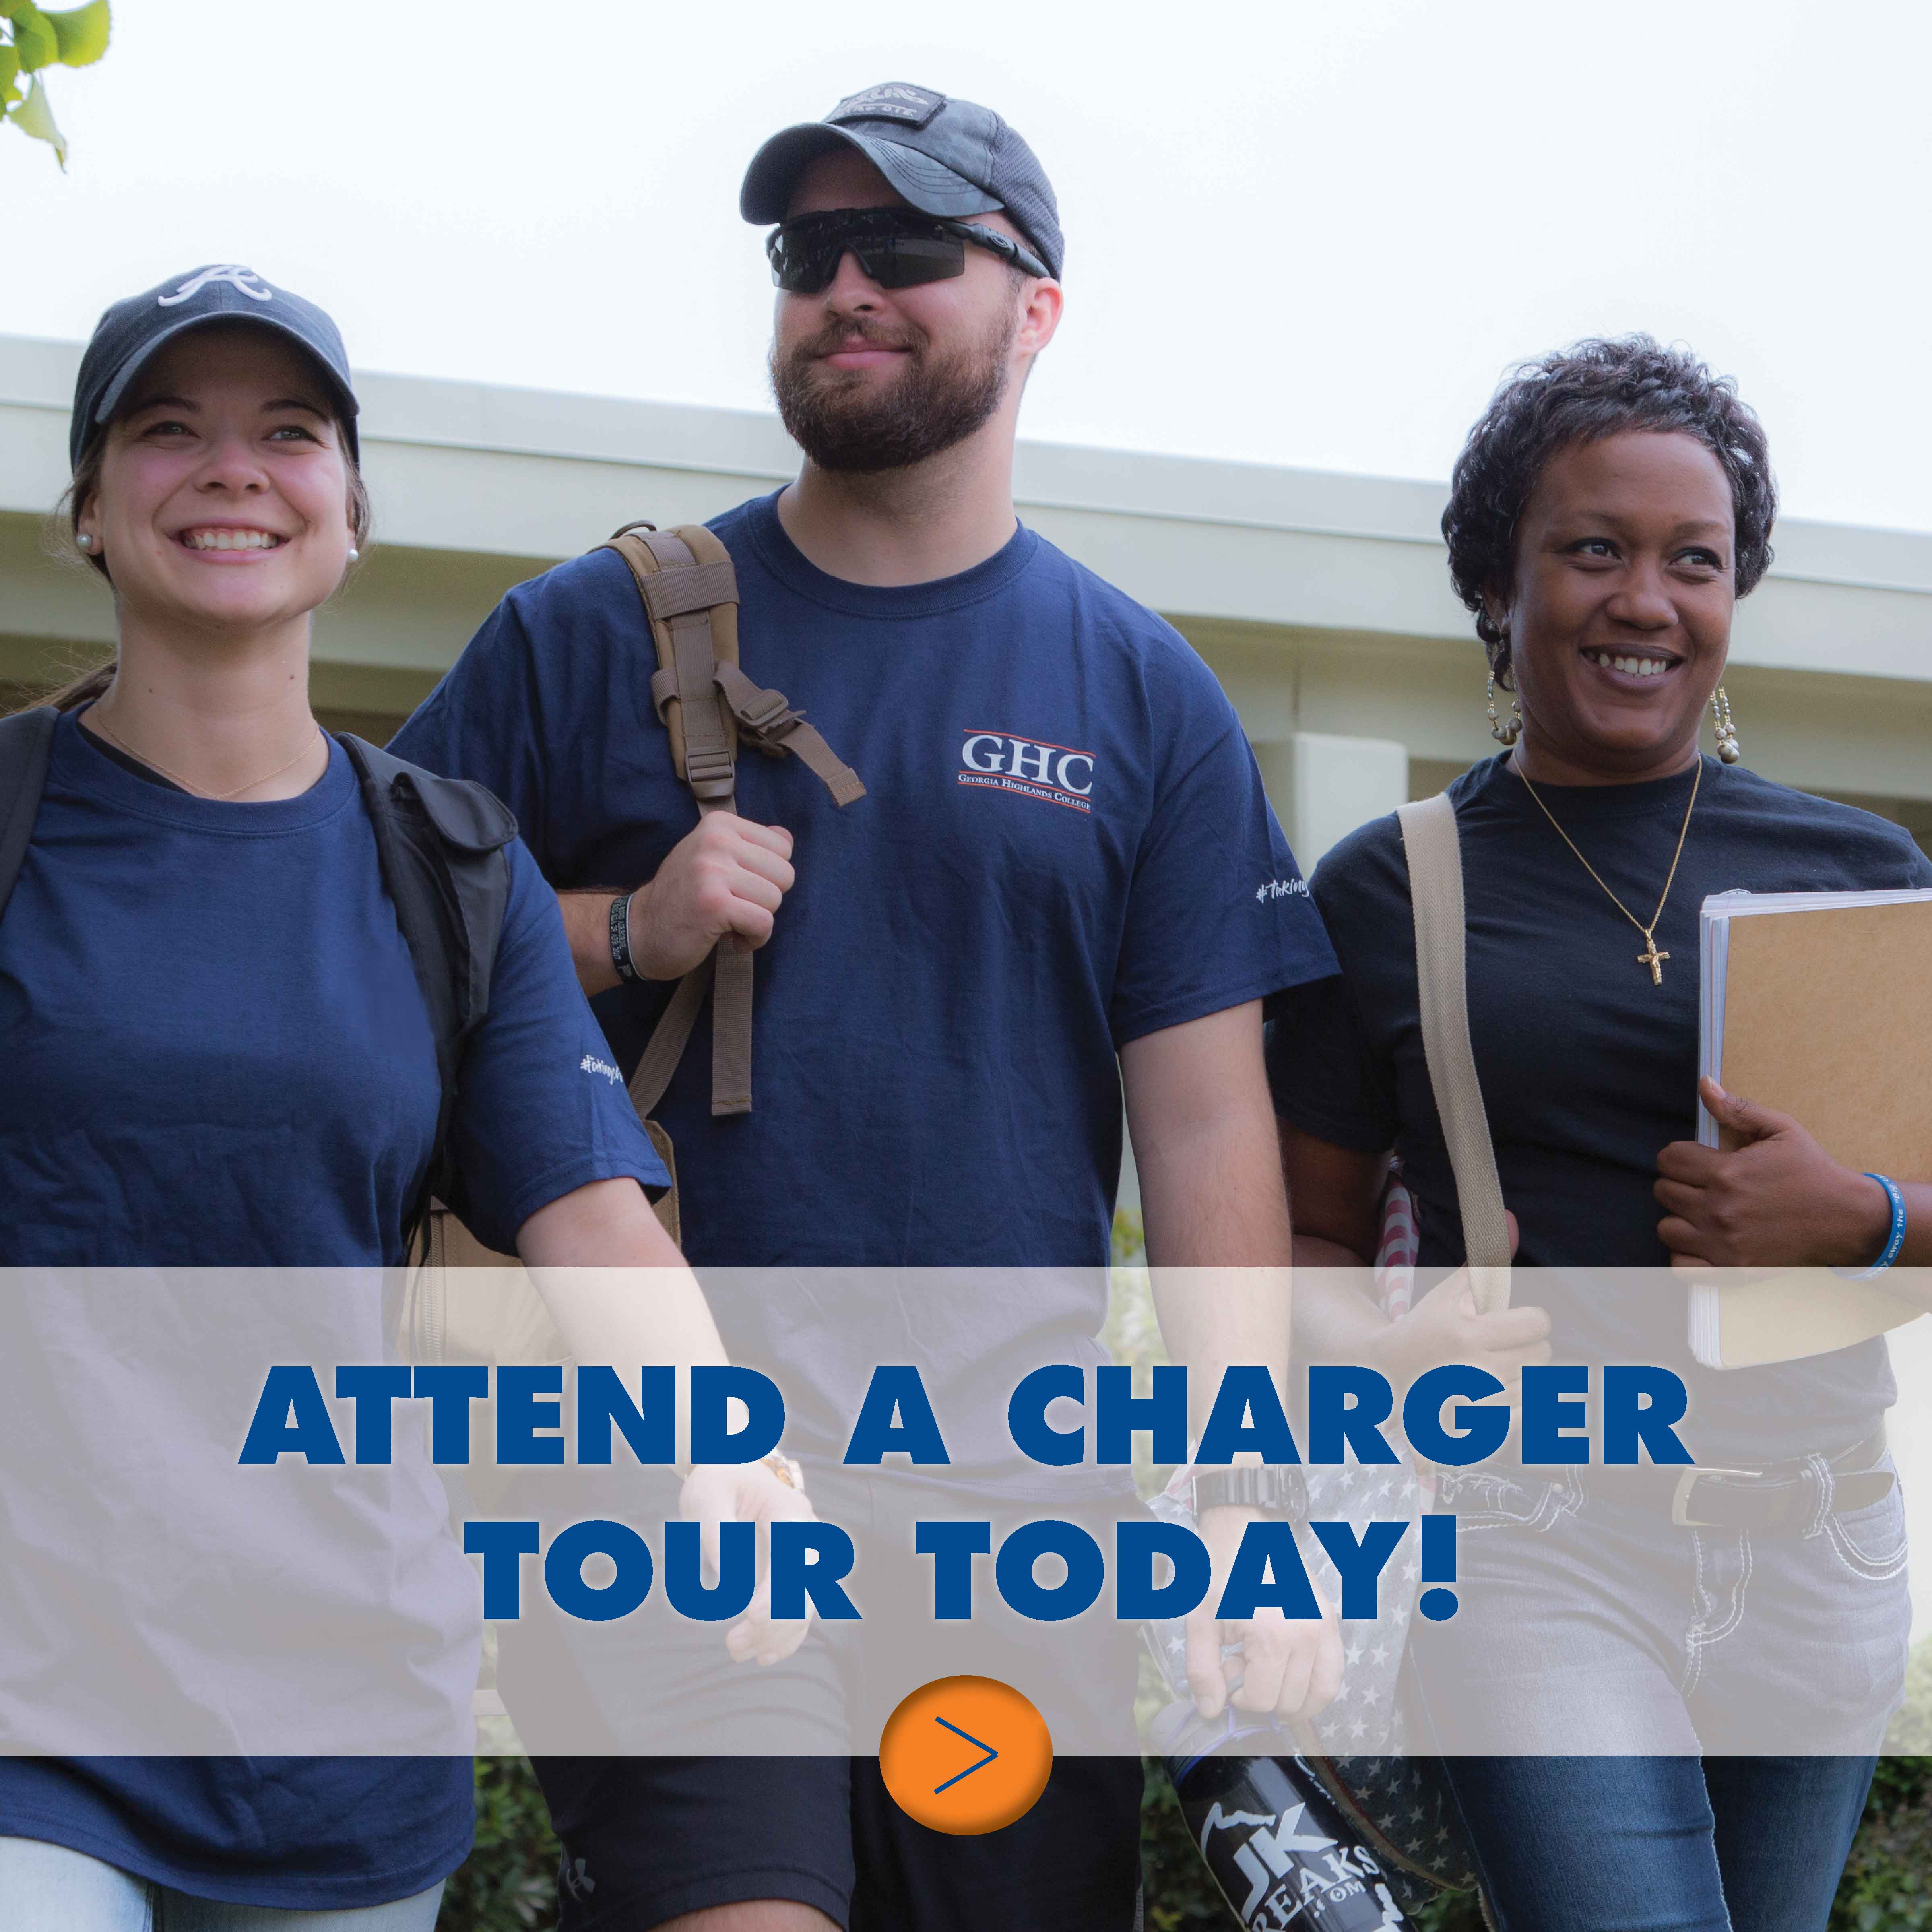 Attend a charger tour. Take charge of your future! New Charger tours are the best way to visit GHC today.